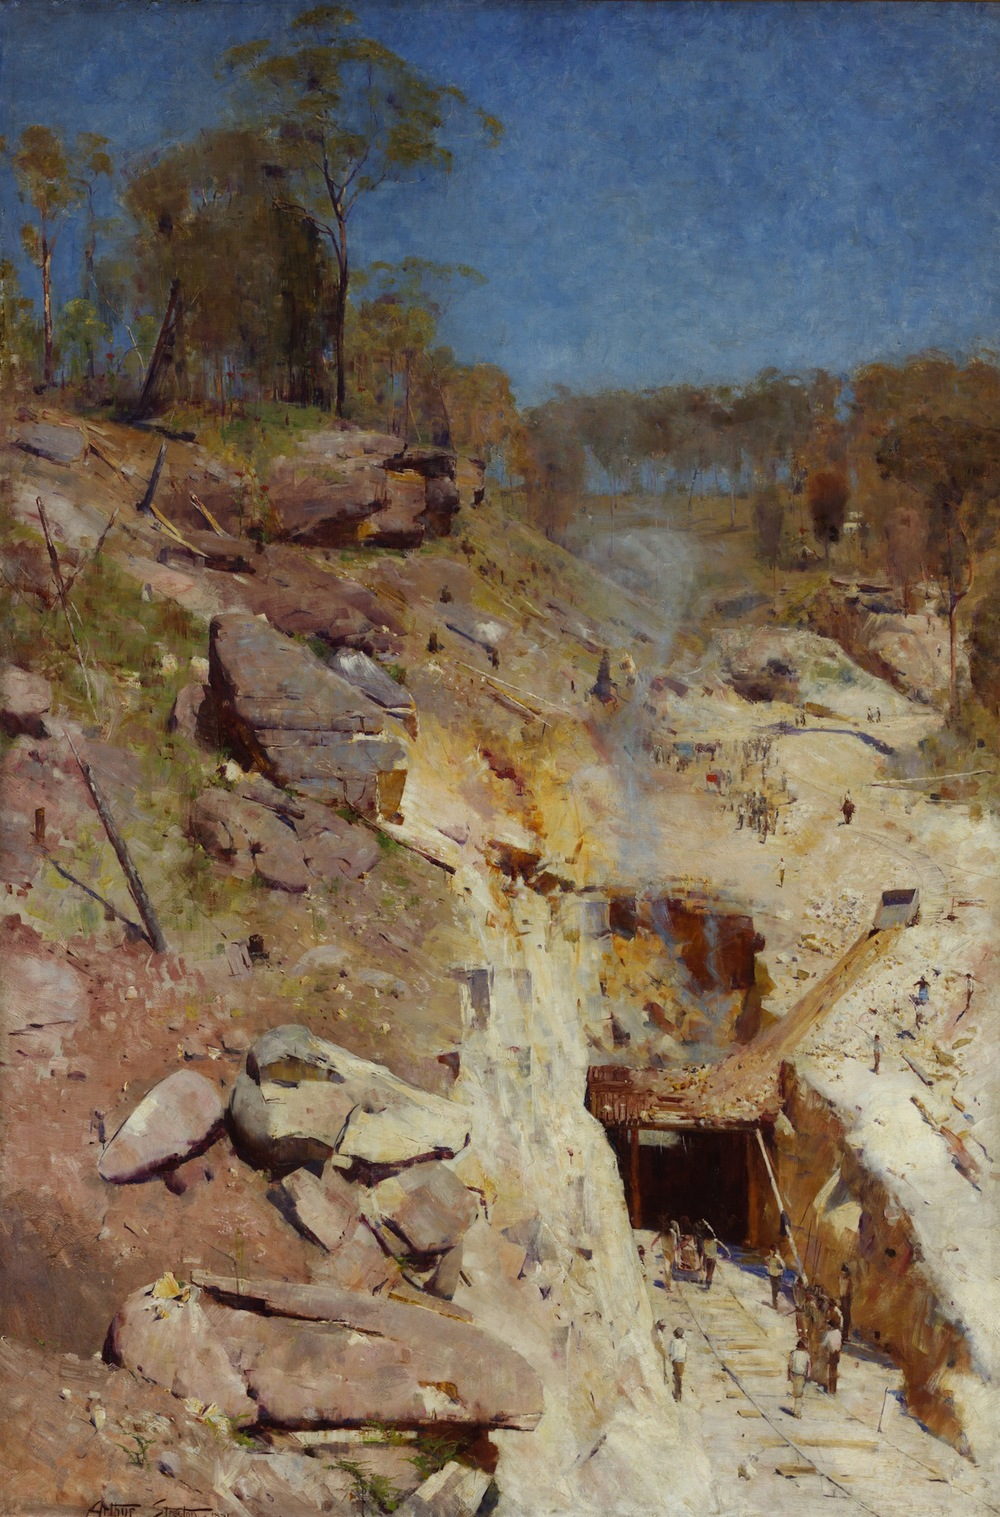 Arthur Streeton, Fire's On, 1891.  Oil on canvas.  183.8 x 122.5 cm.  Art Gallery of New South Wales, purchased 1893. Exhibition organised by the Royal Academy of Arts, London in partnership with the National Gallery of Australia.